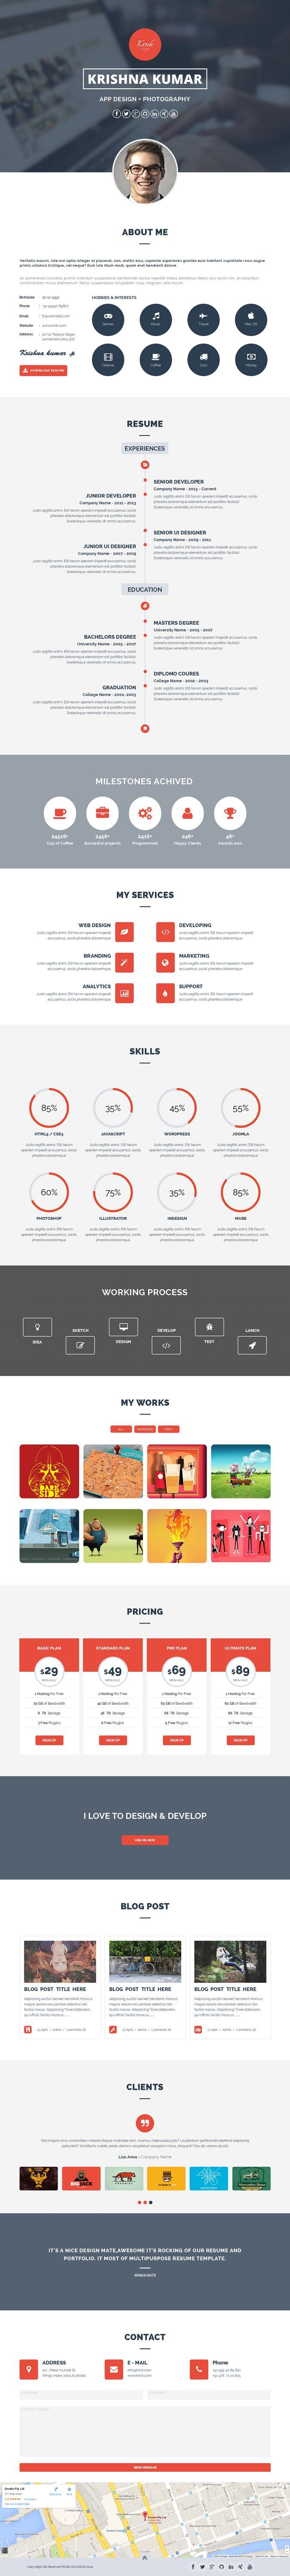 best online resume ideas pinterest template krish parallax one page ...